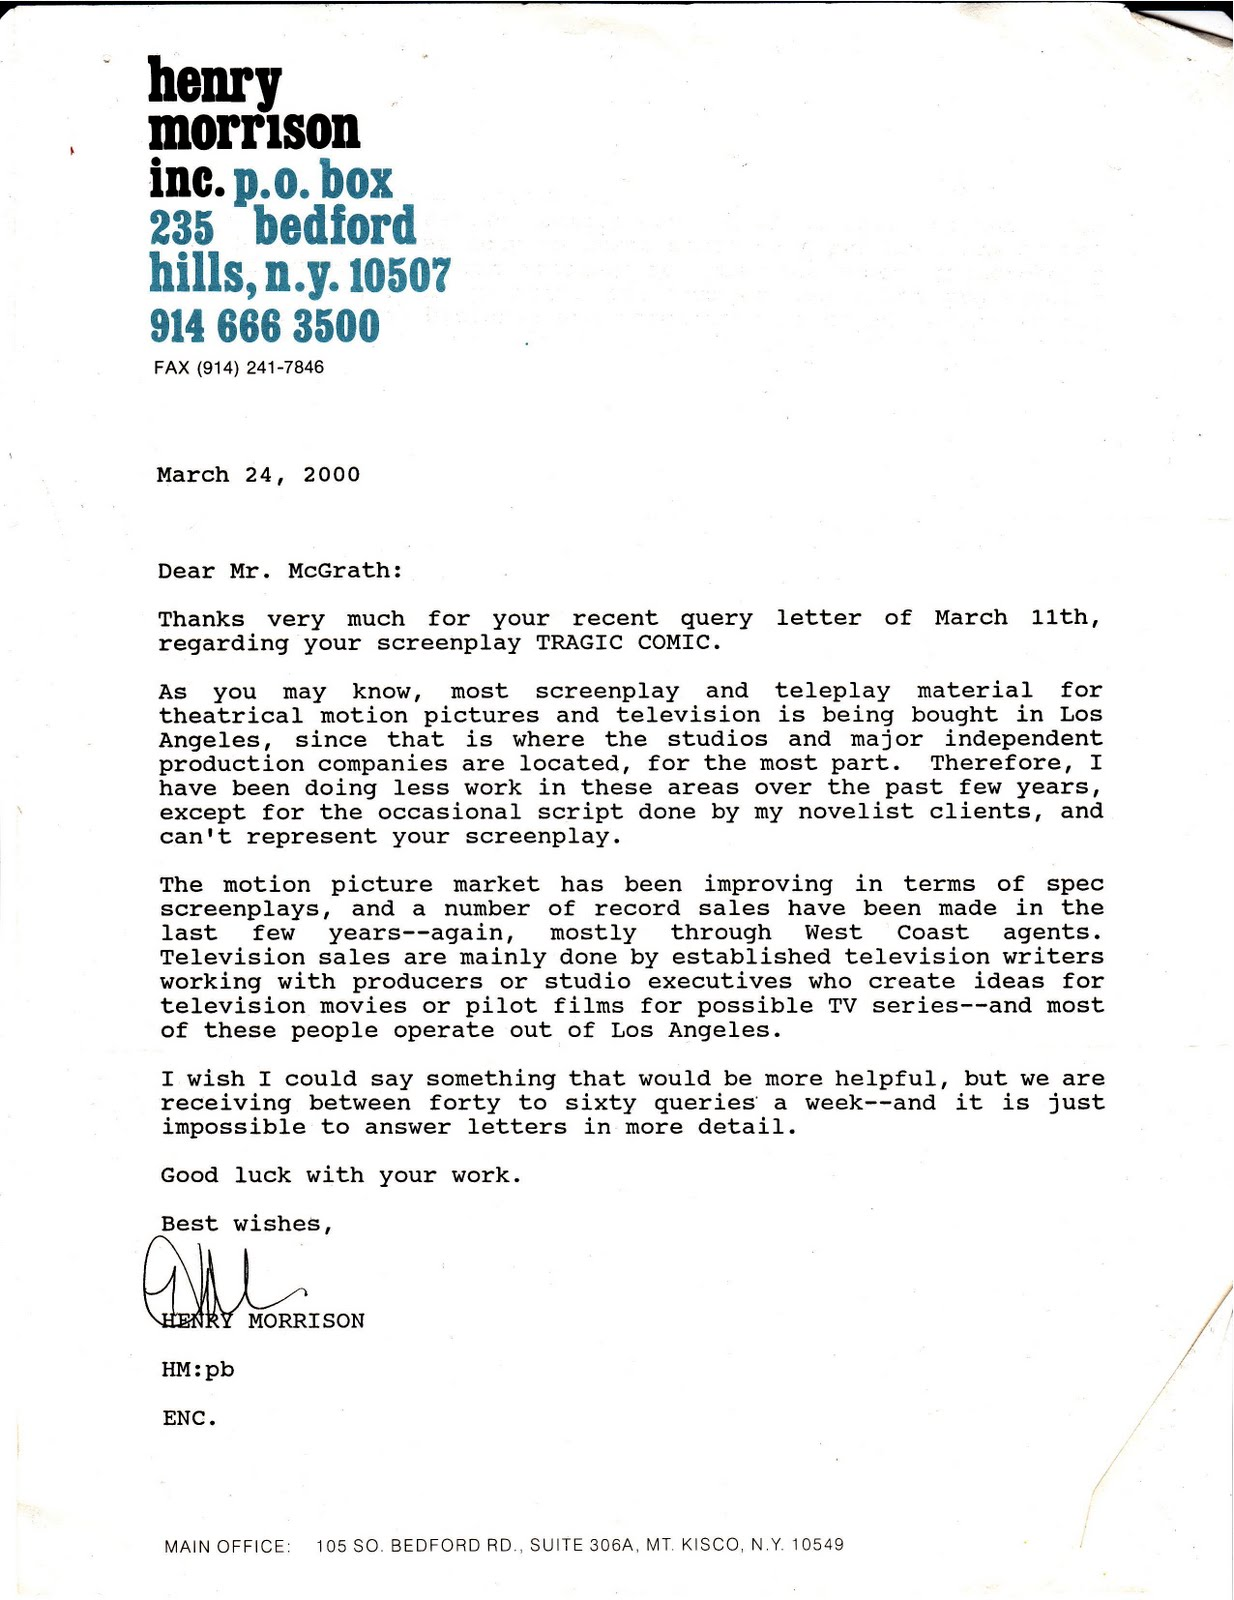 My life scanned january 2011 rejection letter from henry morrison literary agency 2000 spiritdancerdesigns Images